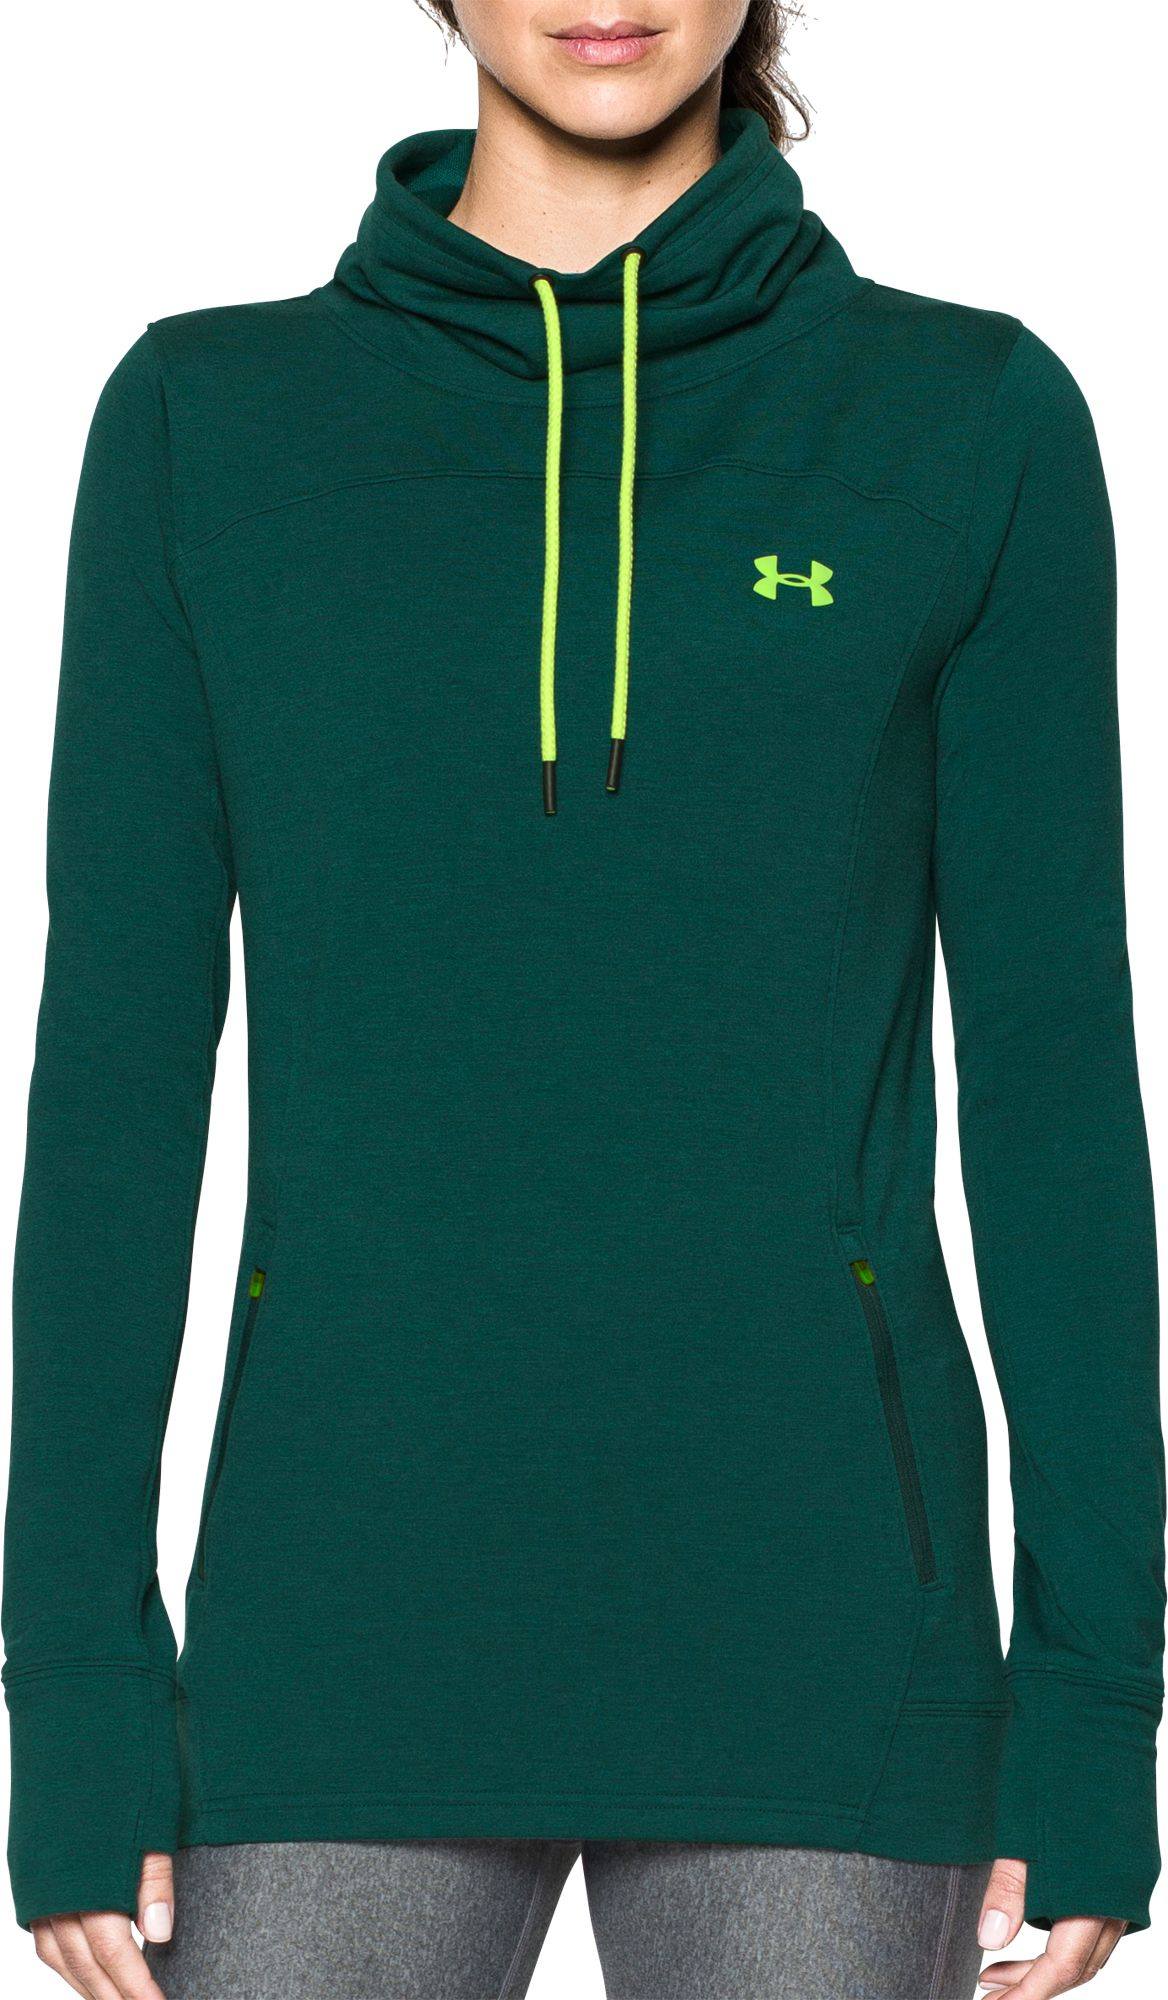 Women's Under Armour Hoodies | DICK'S Sporting Goods